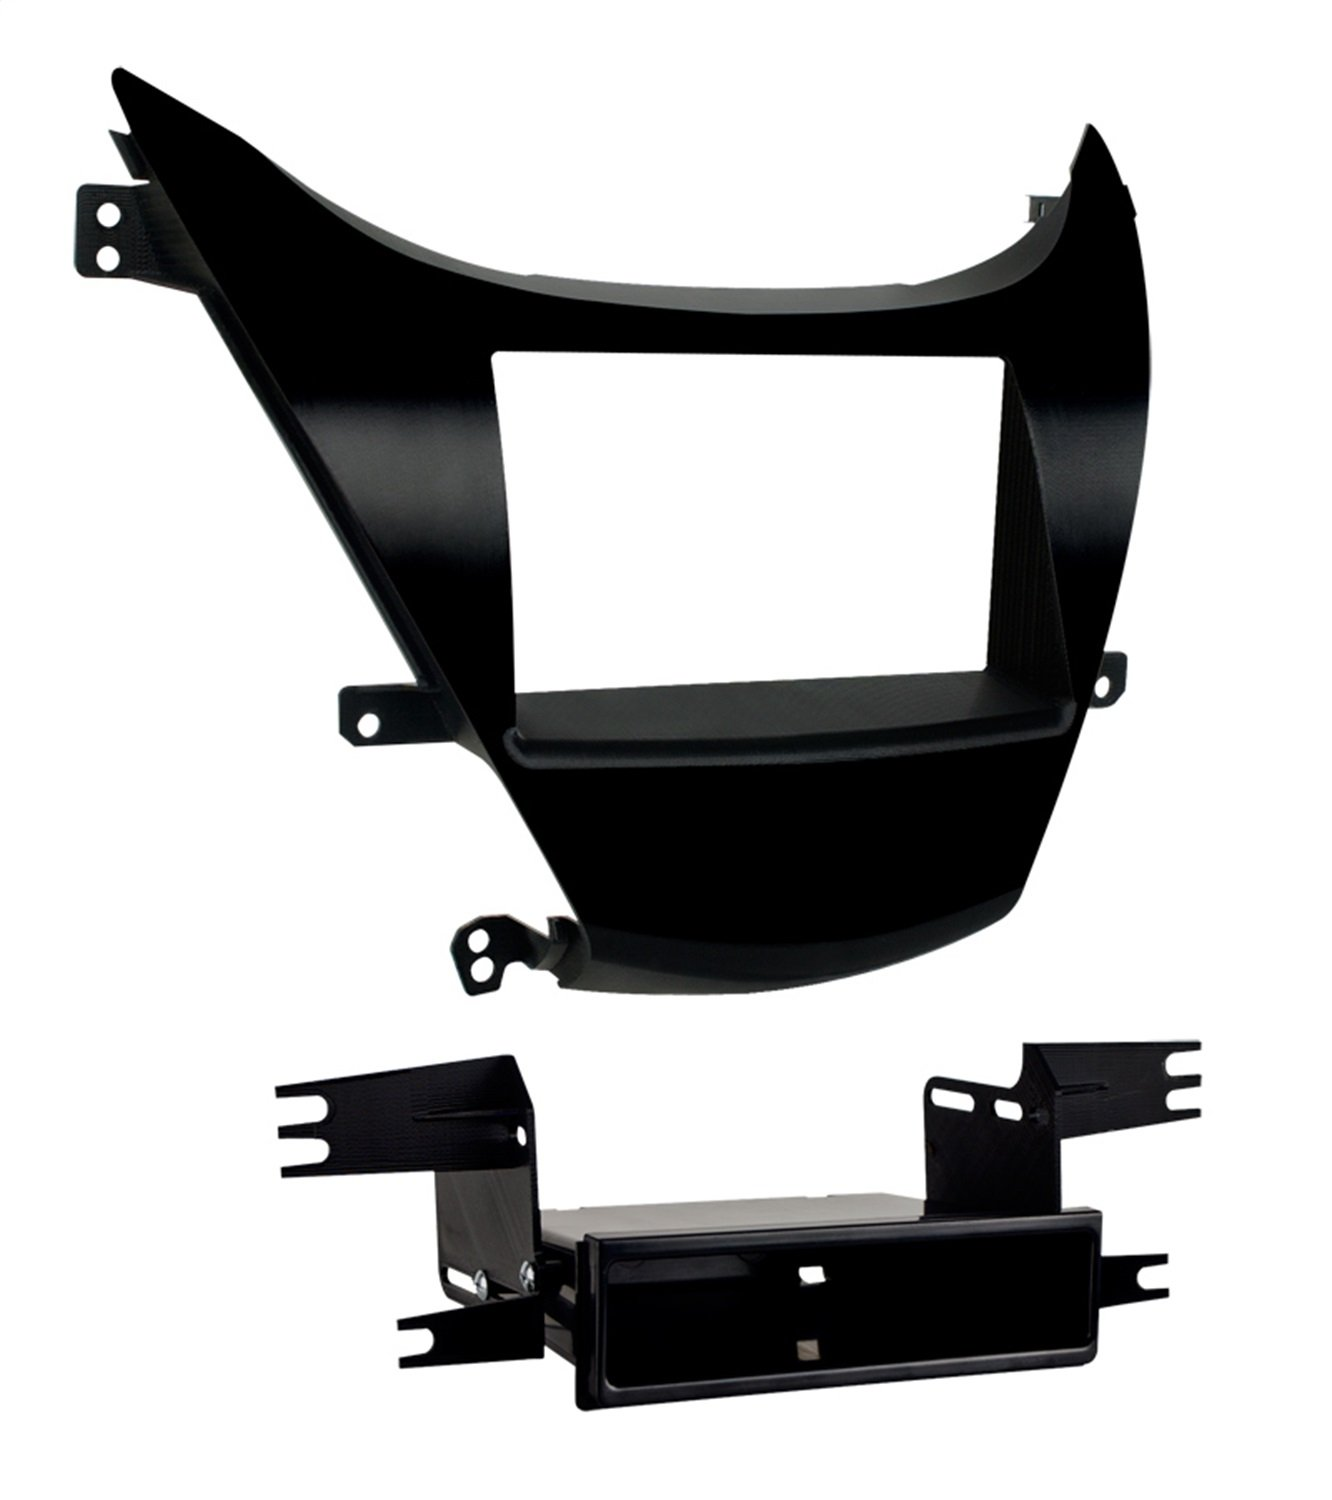 Metra 99-7346B Hyundai Elantra In-Dash Single/Double DIN Dash Install Kit